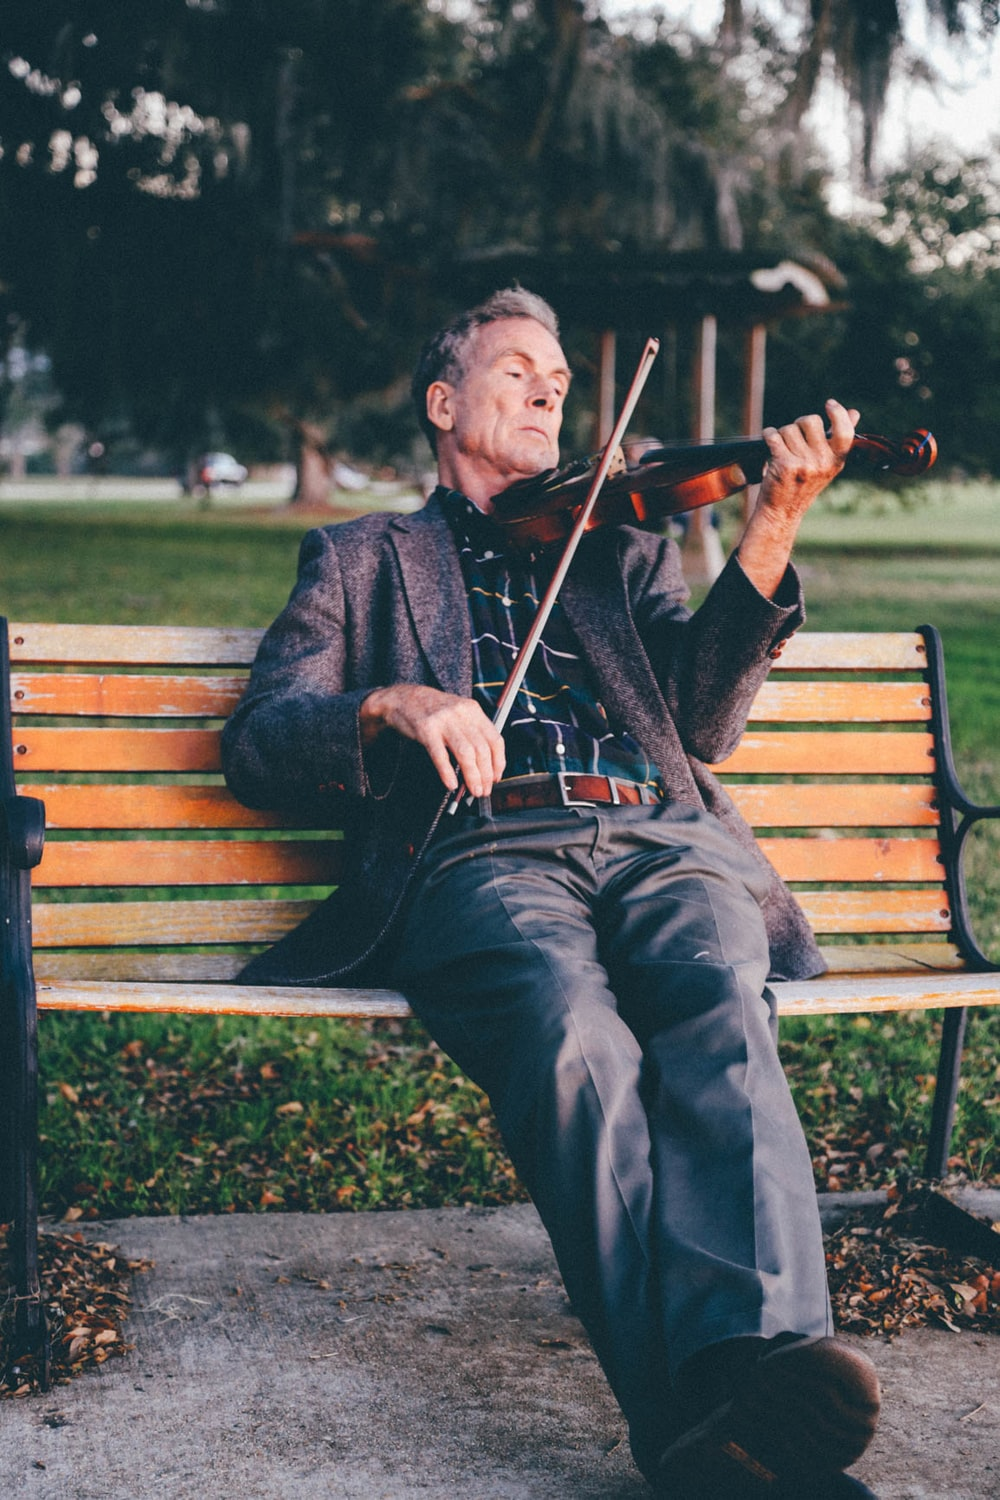 An older man playing a violin on a park bench.